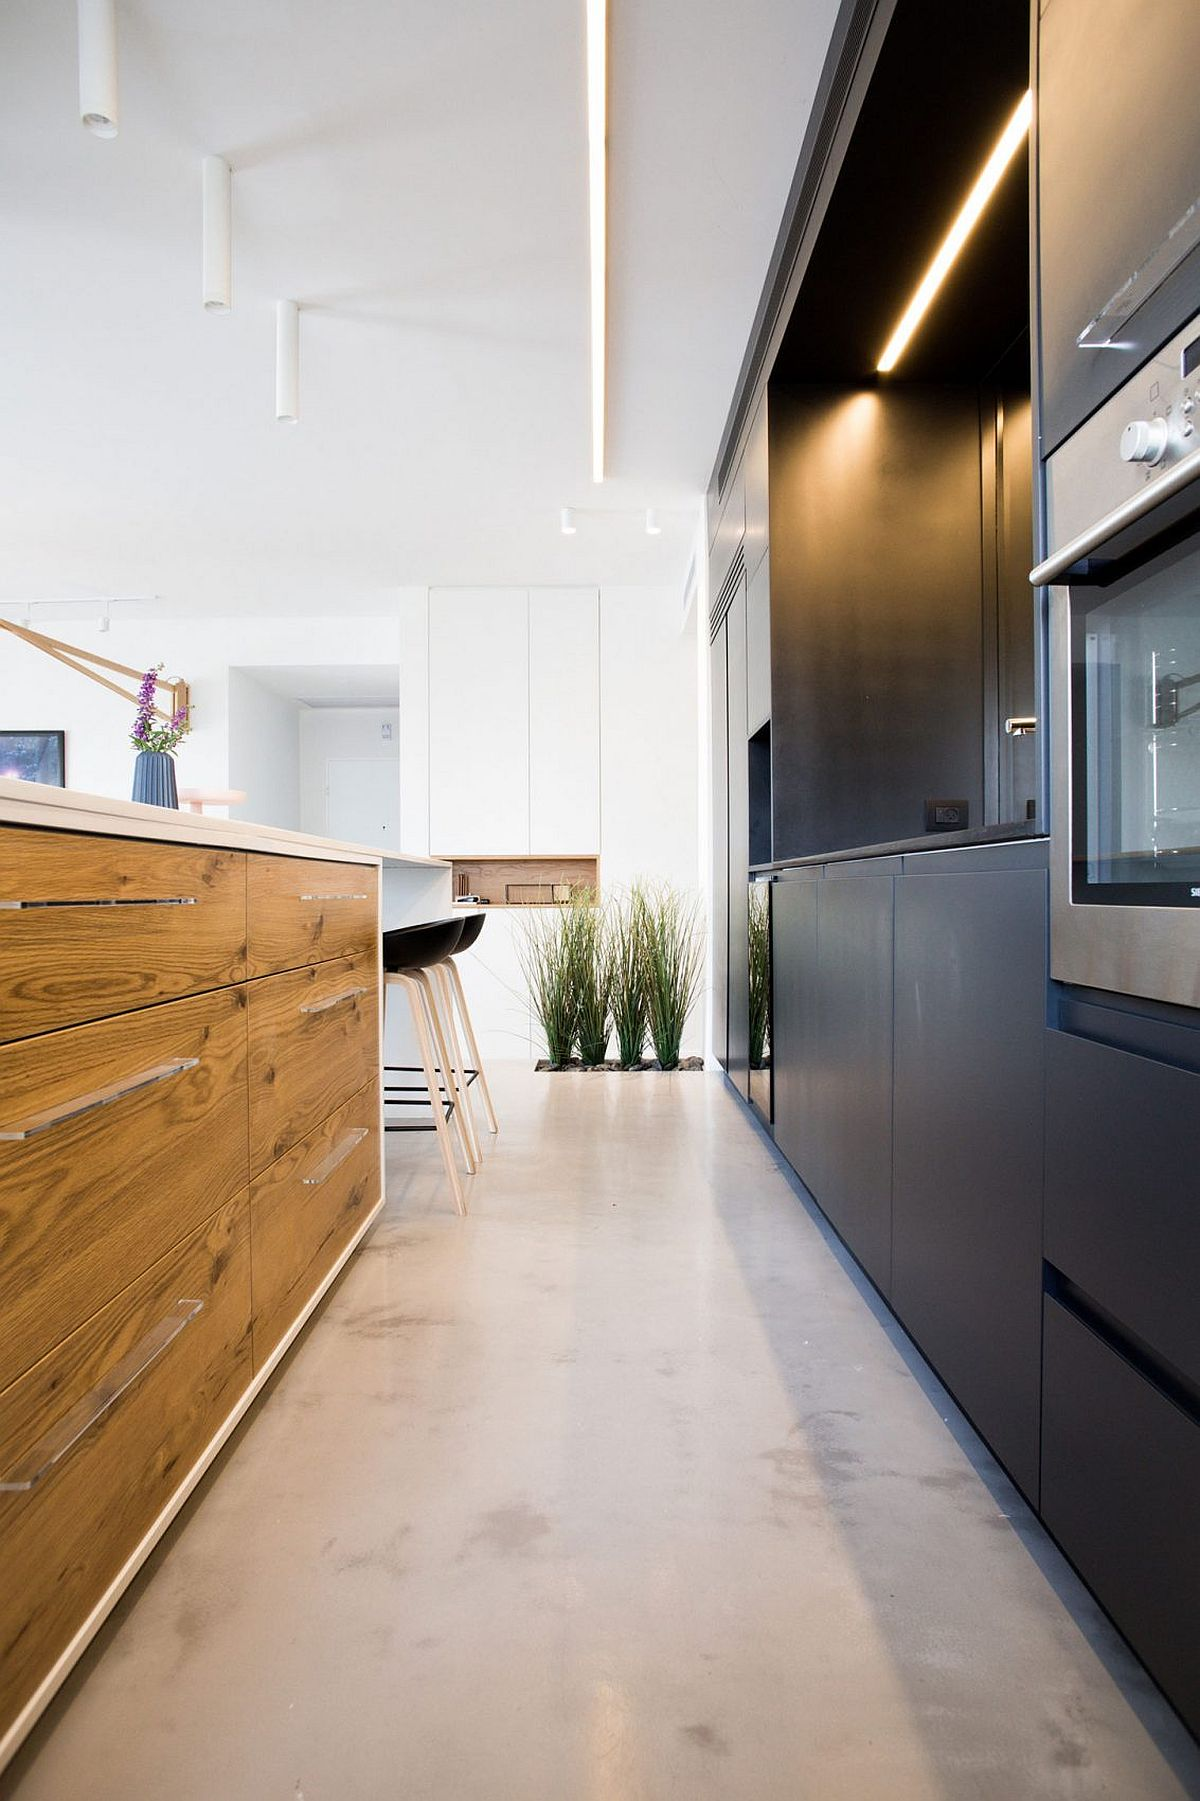 Cleverly designed cabinets for the smart kitchen island